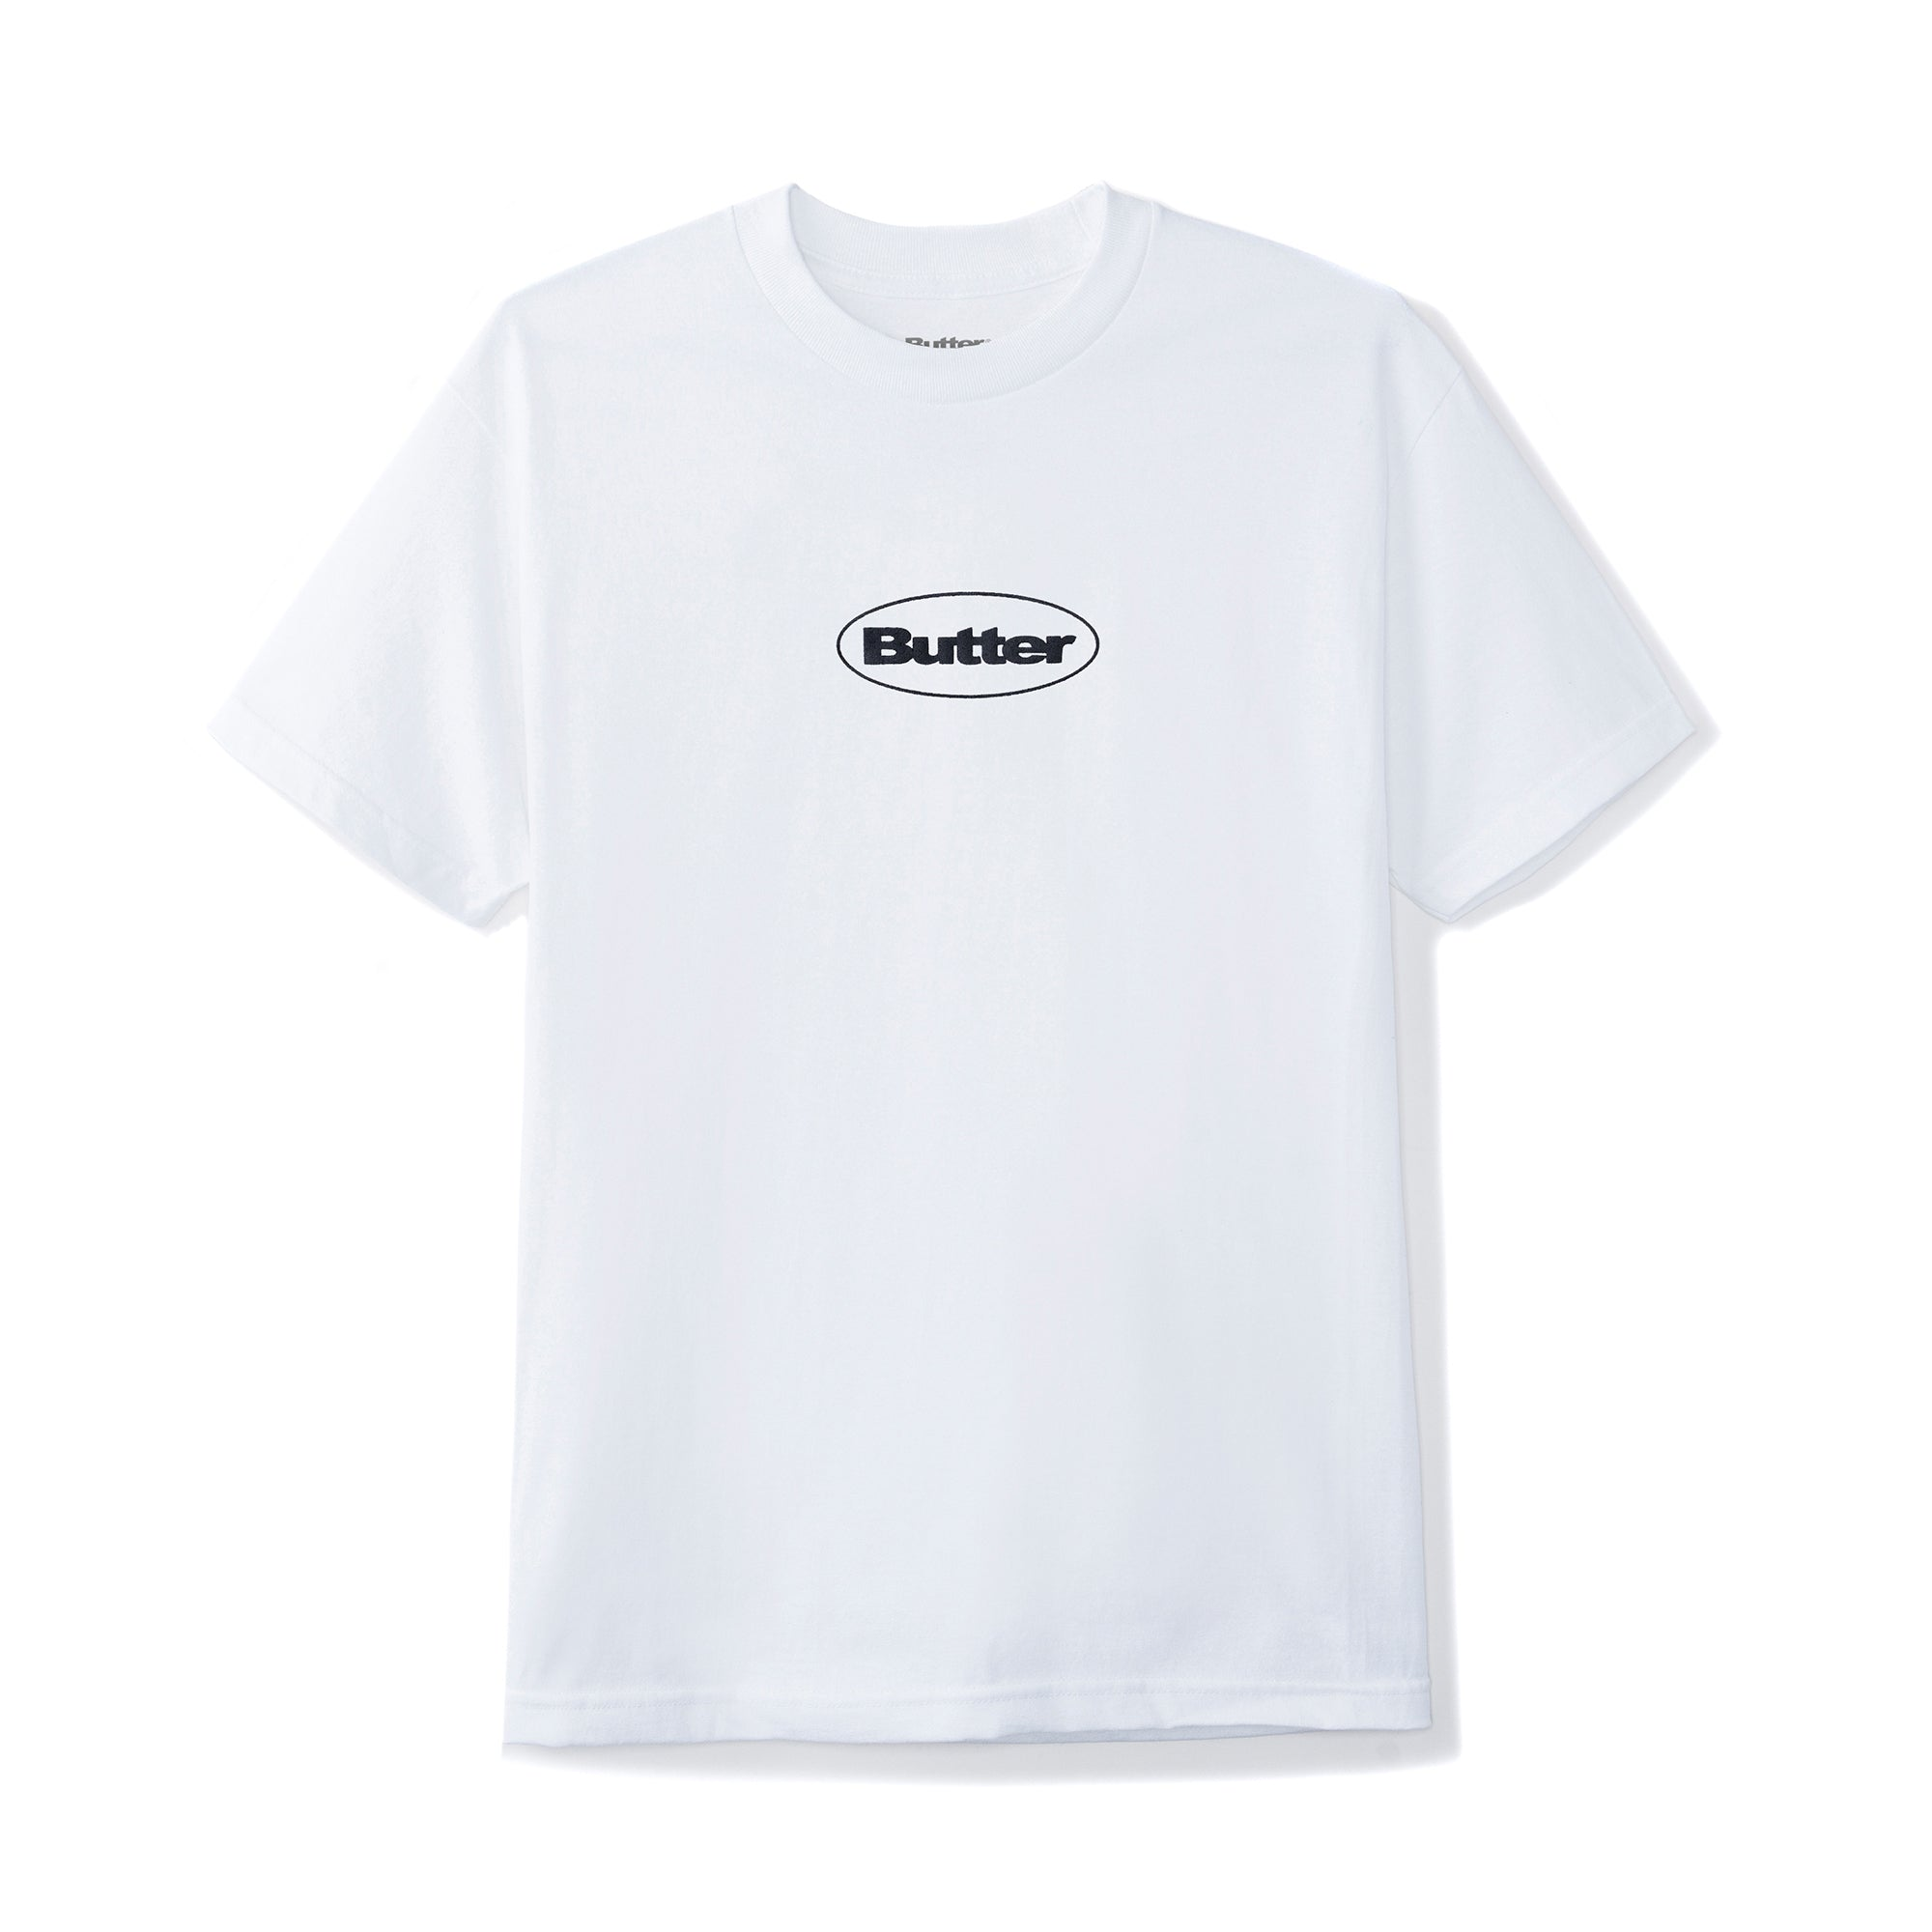 Butter Goods Puff Badge Logo Tee Product Photo #1